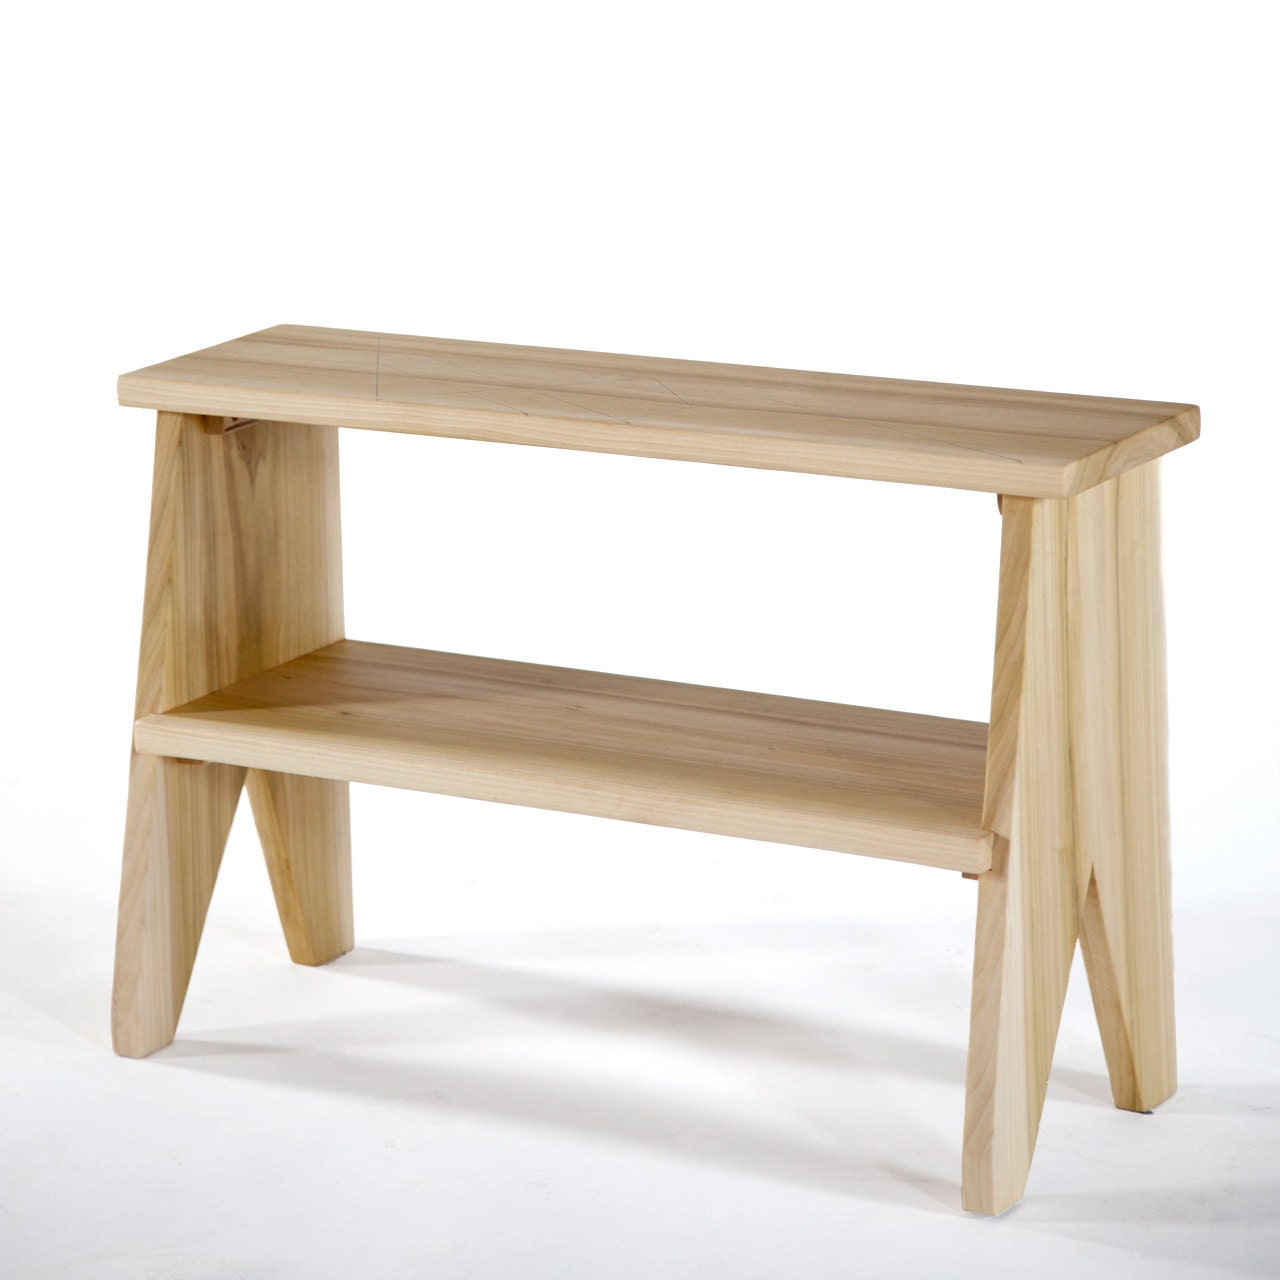 Step stool bedside table small shelving by siosidesignandbuild